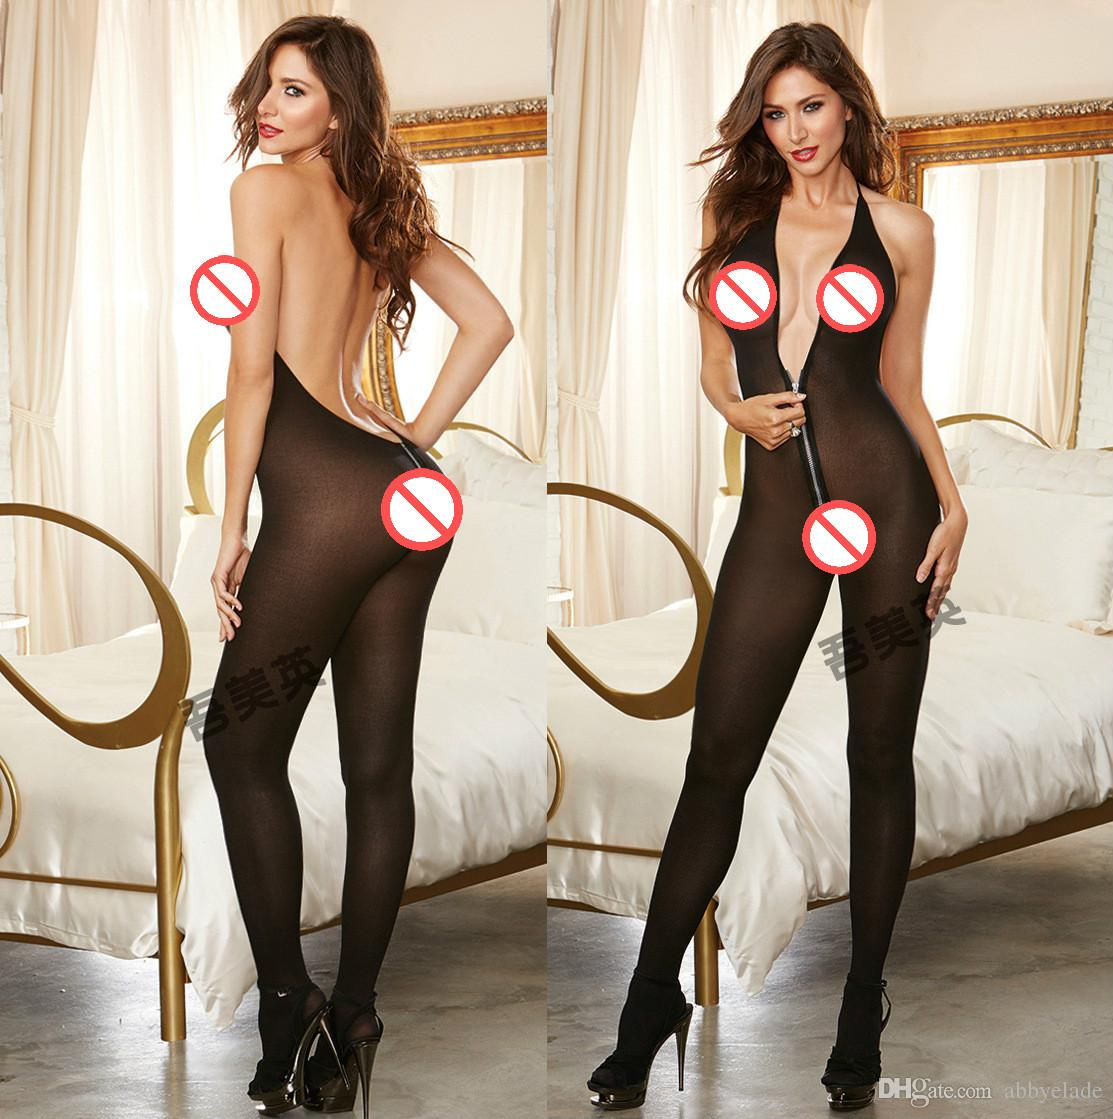 f6998a5d69c7 Compre Bodystocking Sexi Zipper Mujer Sexy Erotic Sheer ...